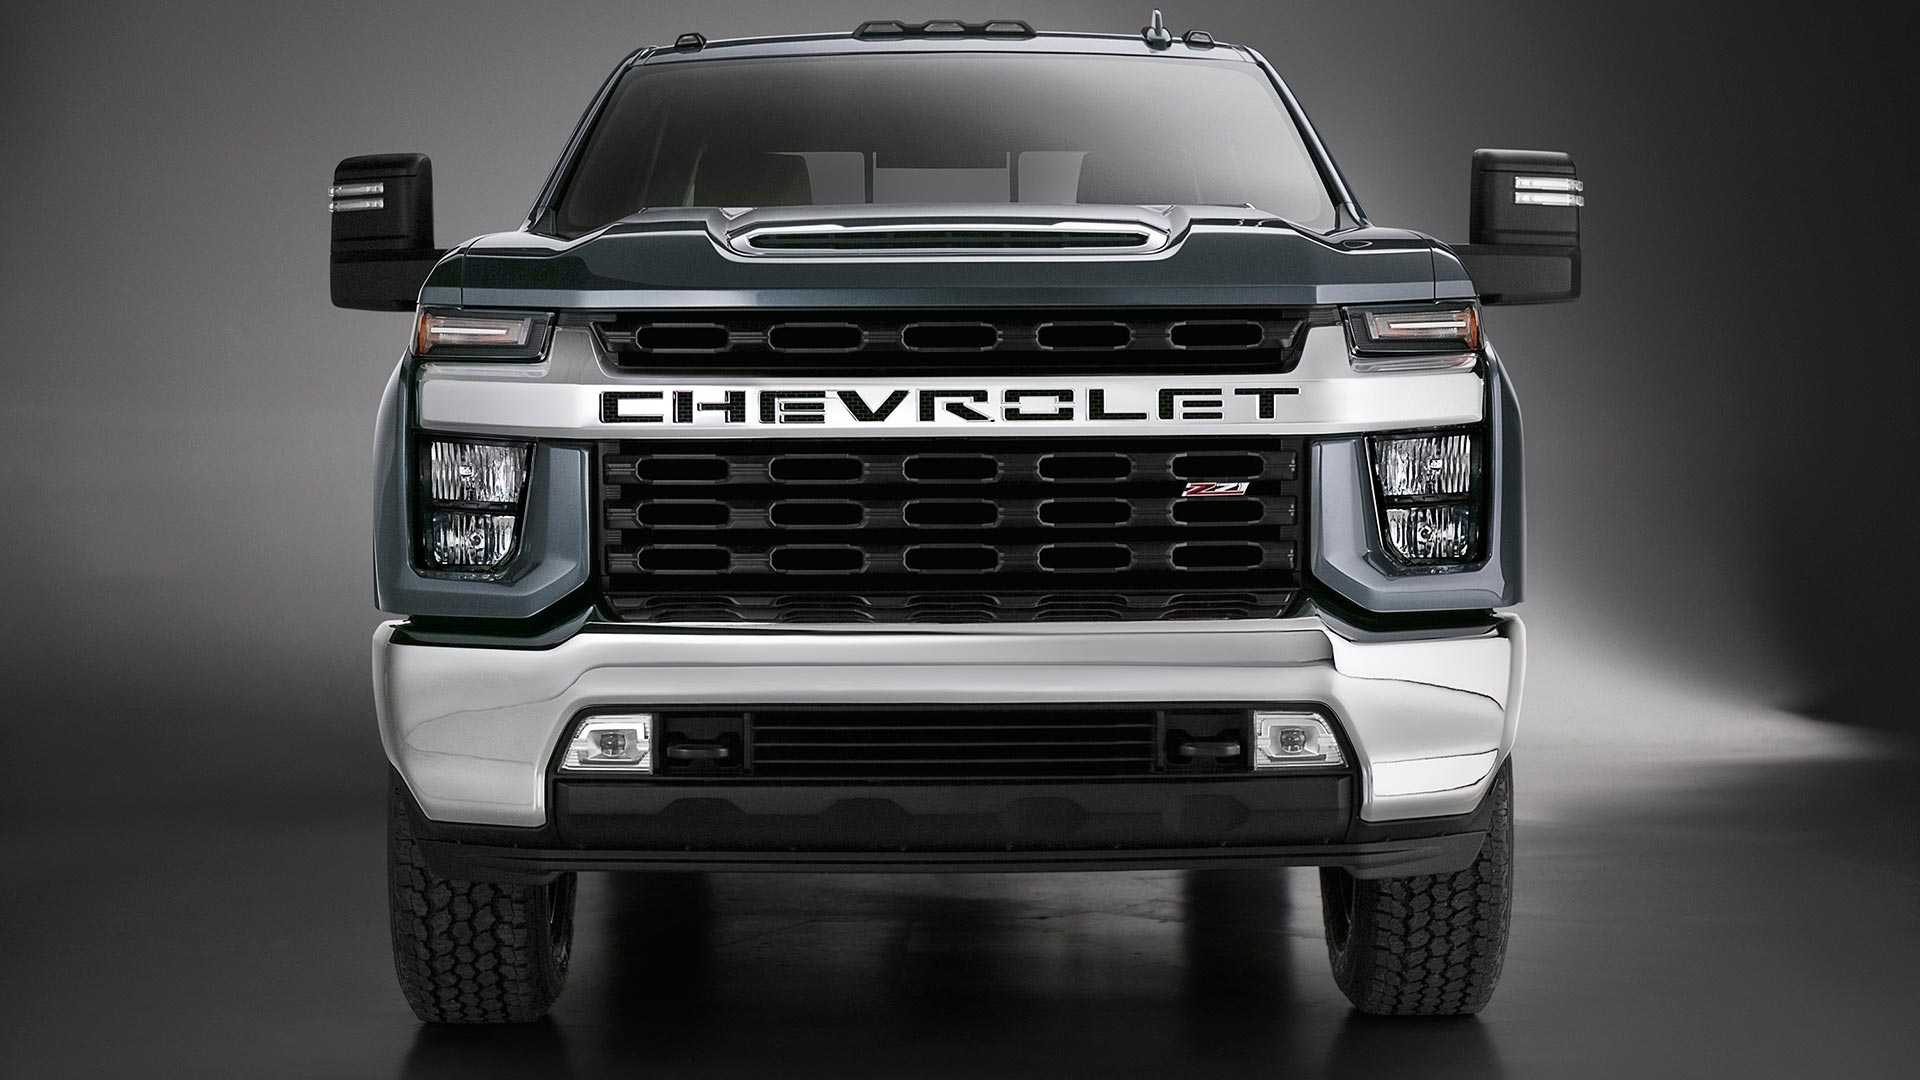 31 All New 2020 Chevrolet Pickup Truck Interior